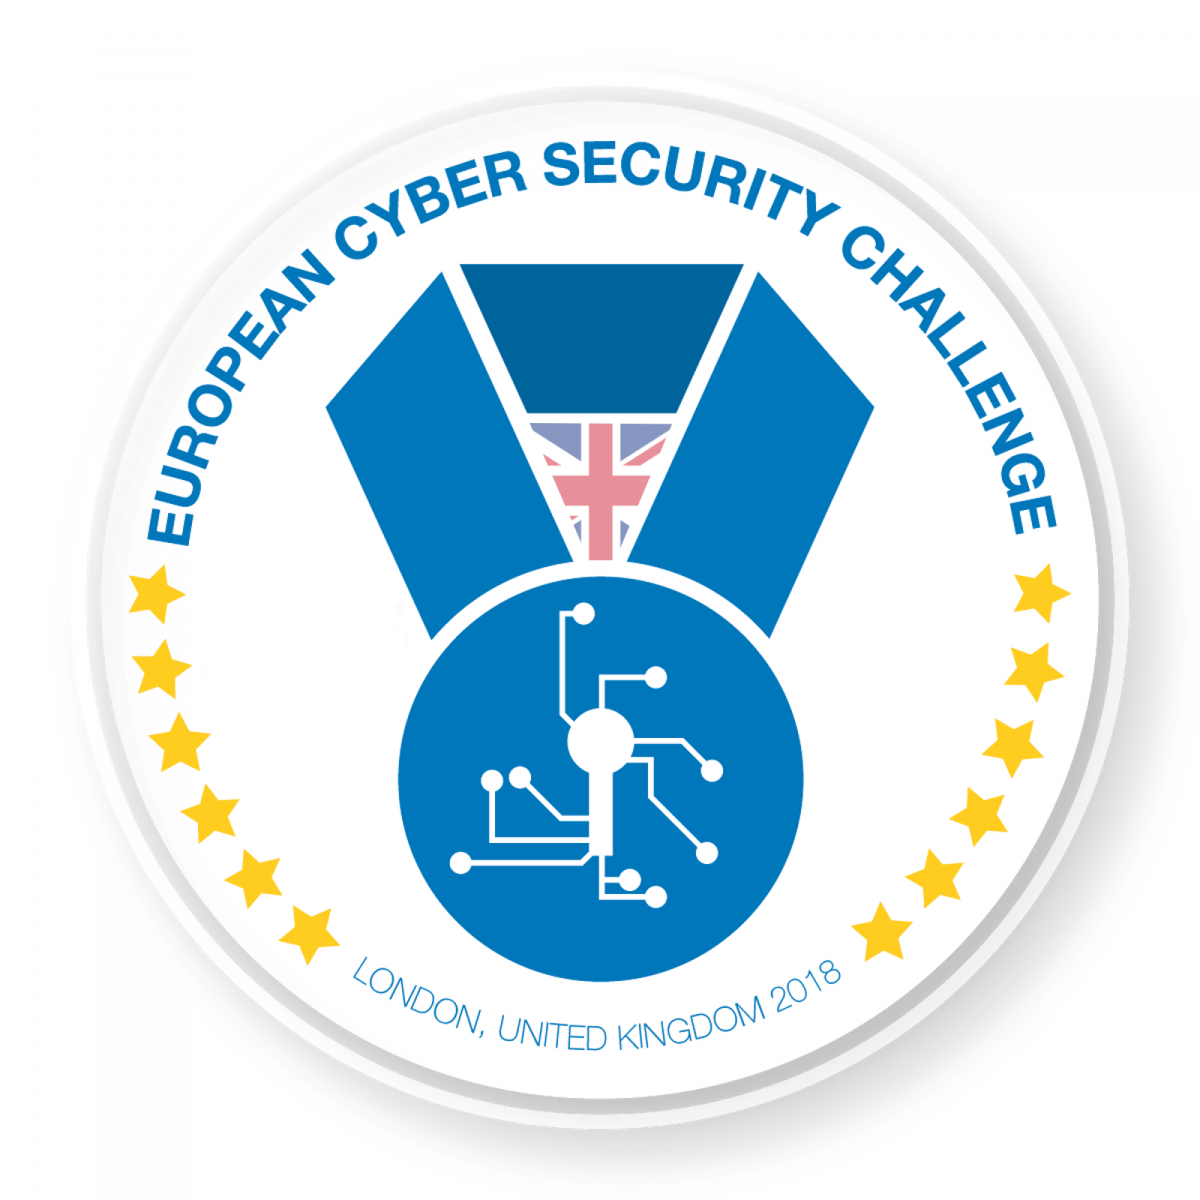 European Cyber Security Challenge. London UK 2018